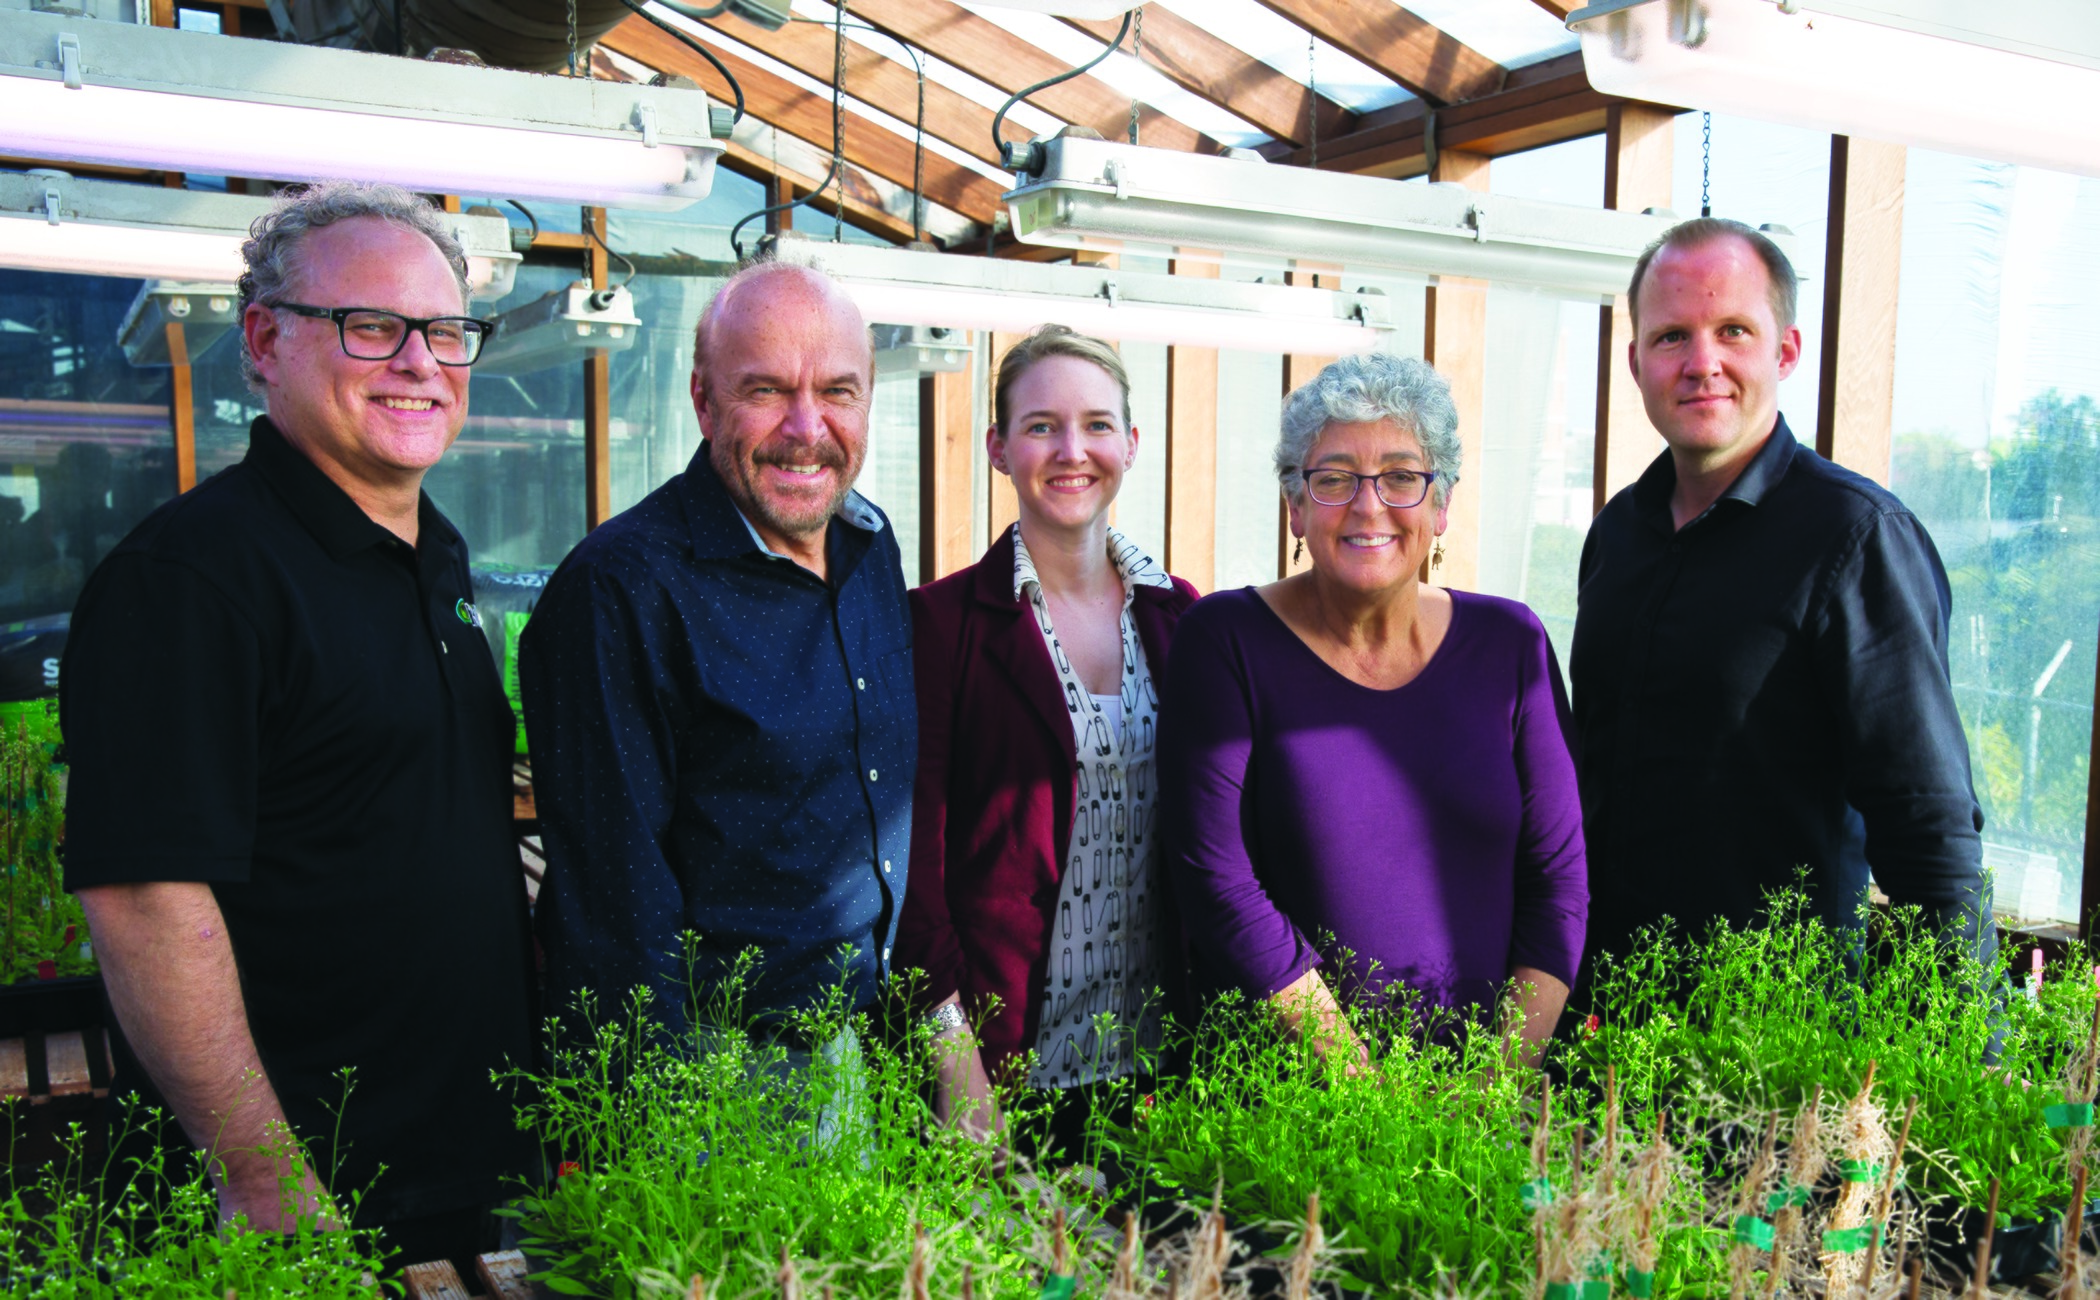 Pictured:  The Salk Institute plant biology team. From left: Professor Joseph Noel, Professor Joseph Ecker, Associate Professor Julie Law, Professor Joanne Chory, Associate Professor Wolfgang Busch.